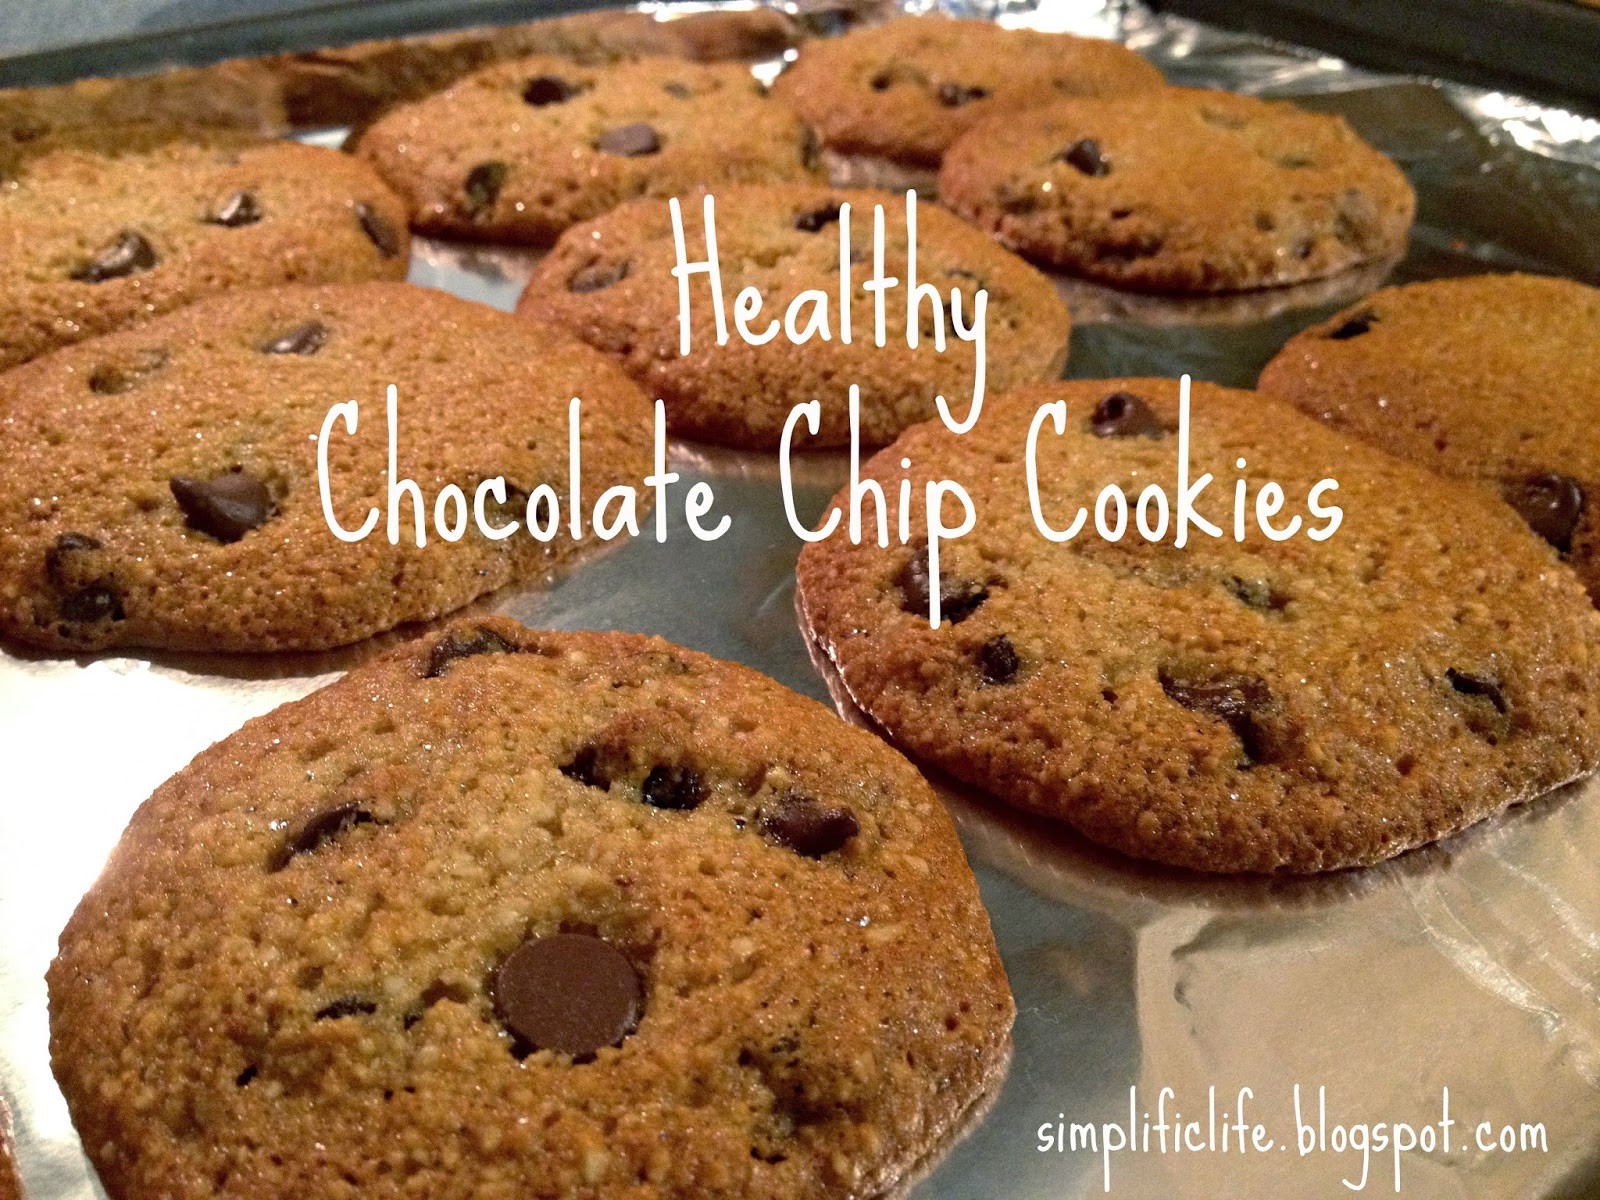 Healthier Chocolate Chip Cookies  The Simple Life Healthy Chocolate Chip Cookies Gluten Free